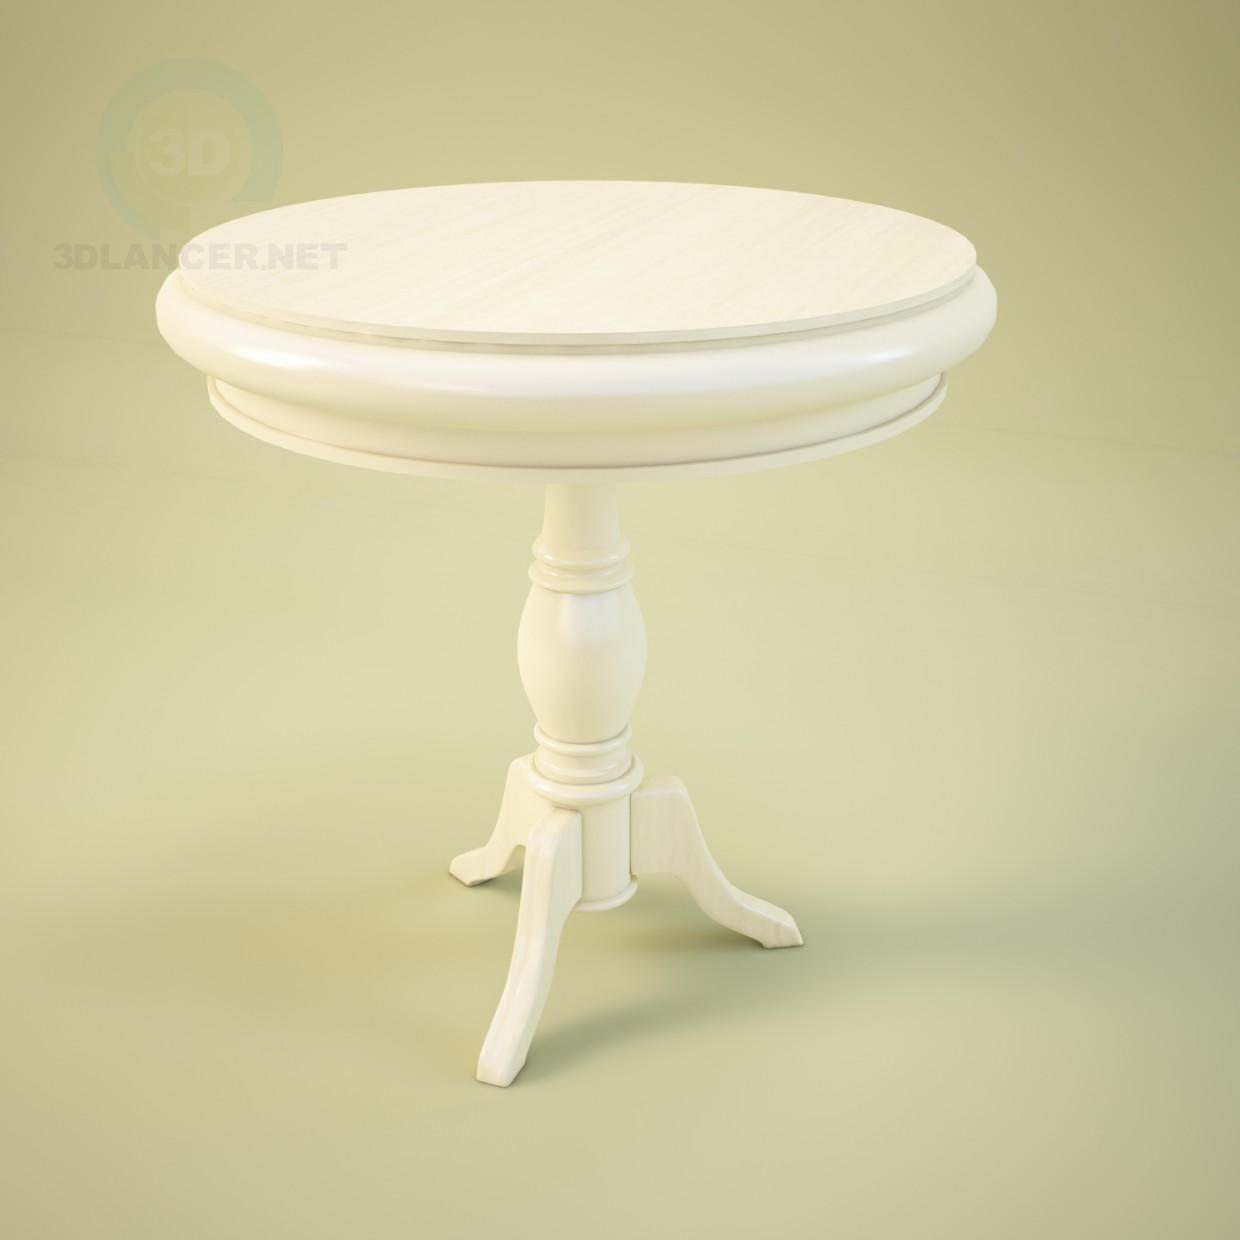 3d model round table in the style of classicism id 9781 for Table 3d model